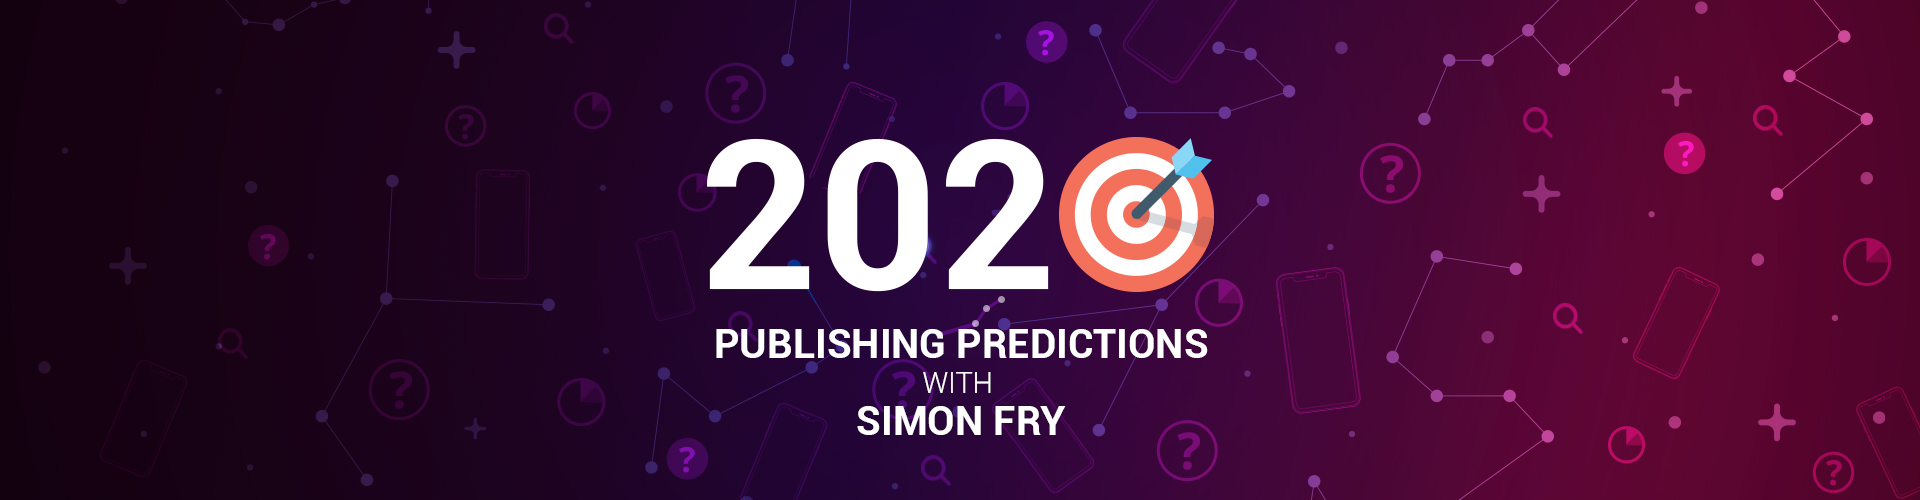 2020 Publishing Predictions with Simon Fry